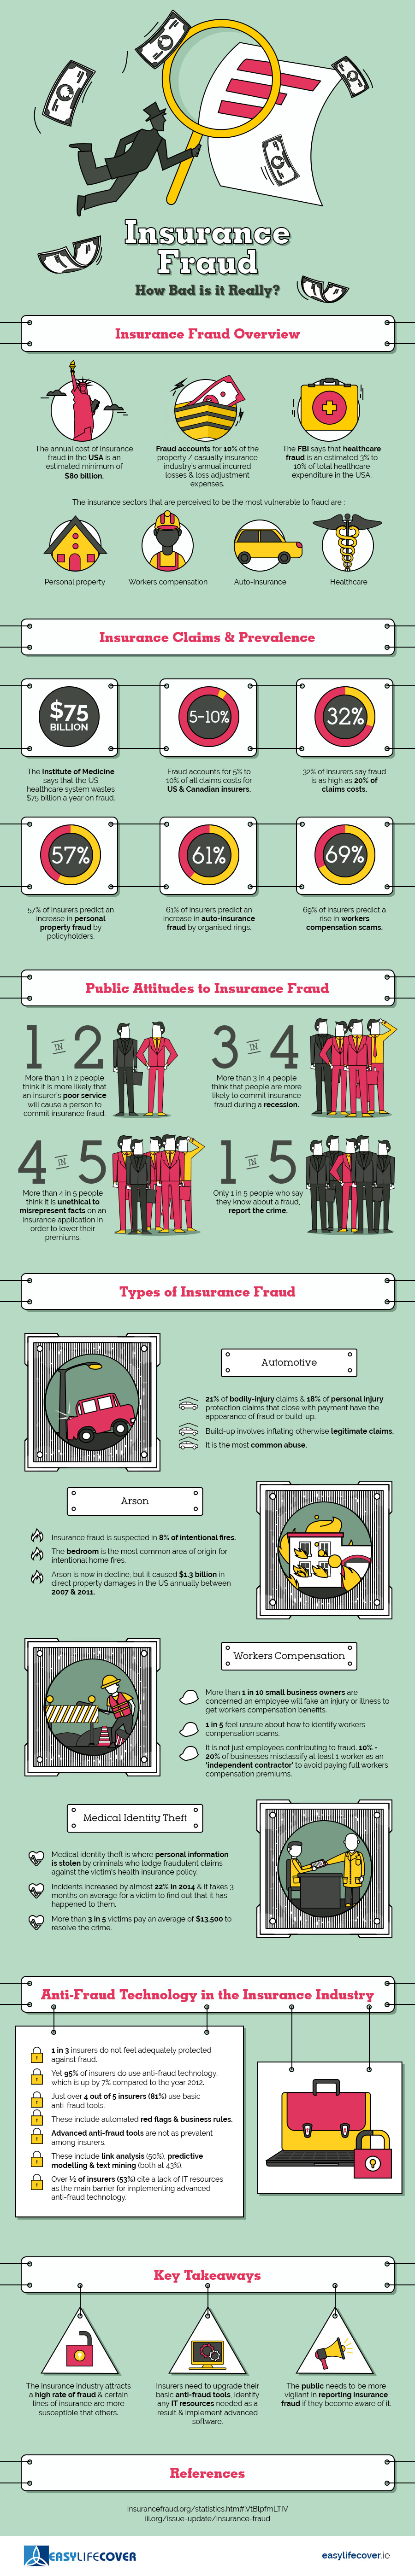 The World of Insurance Fraud Infographic